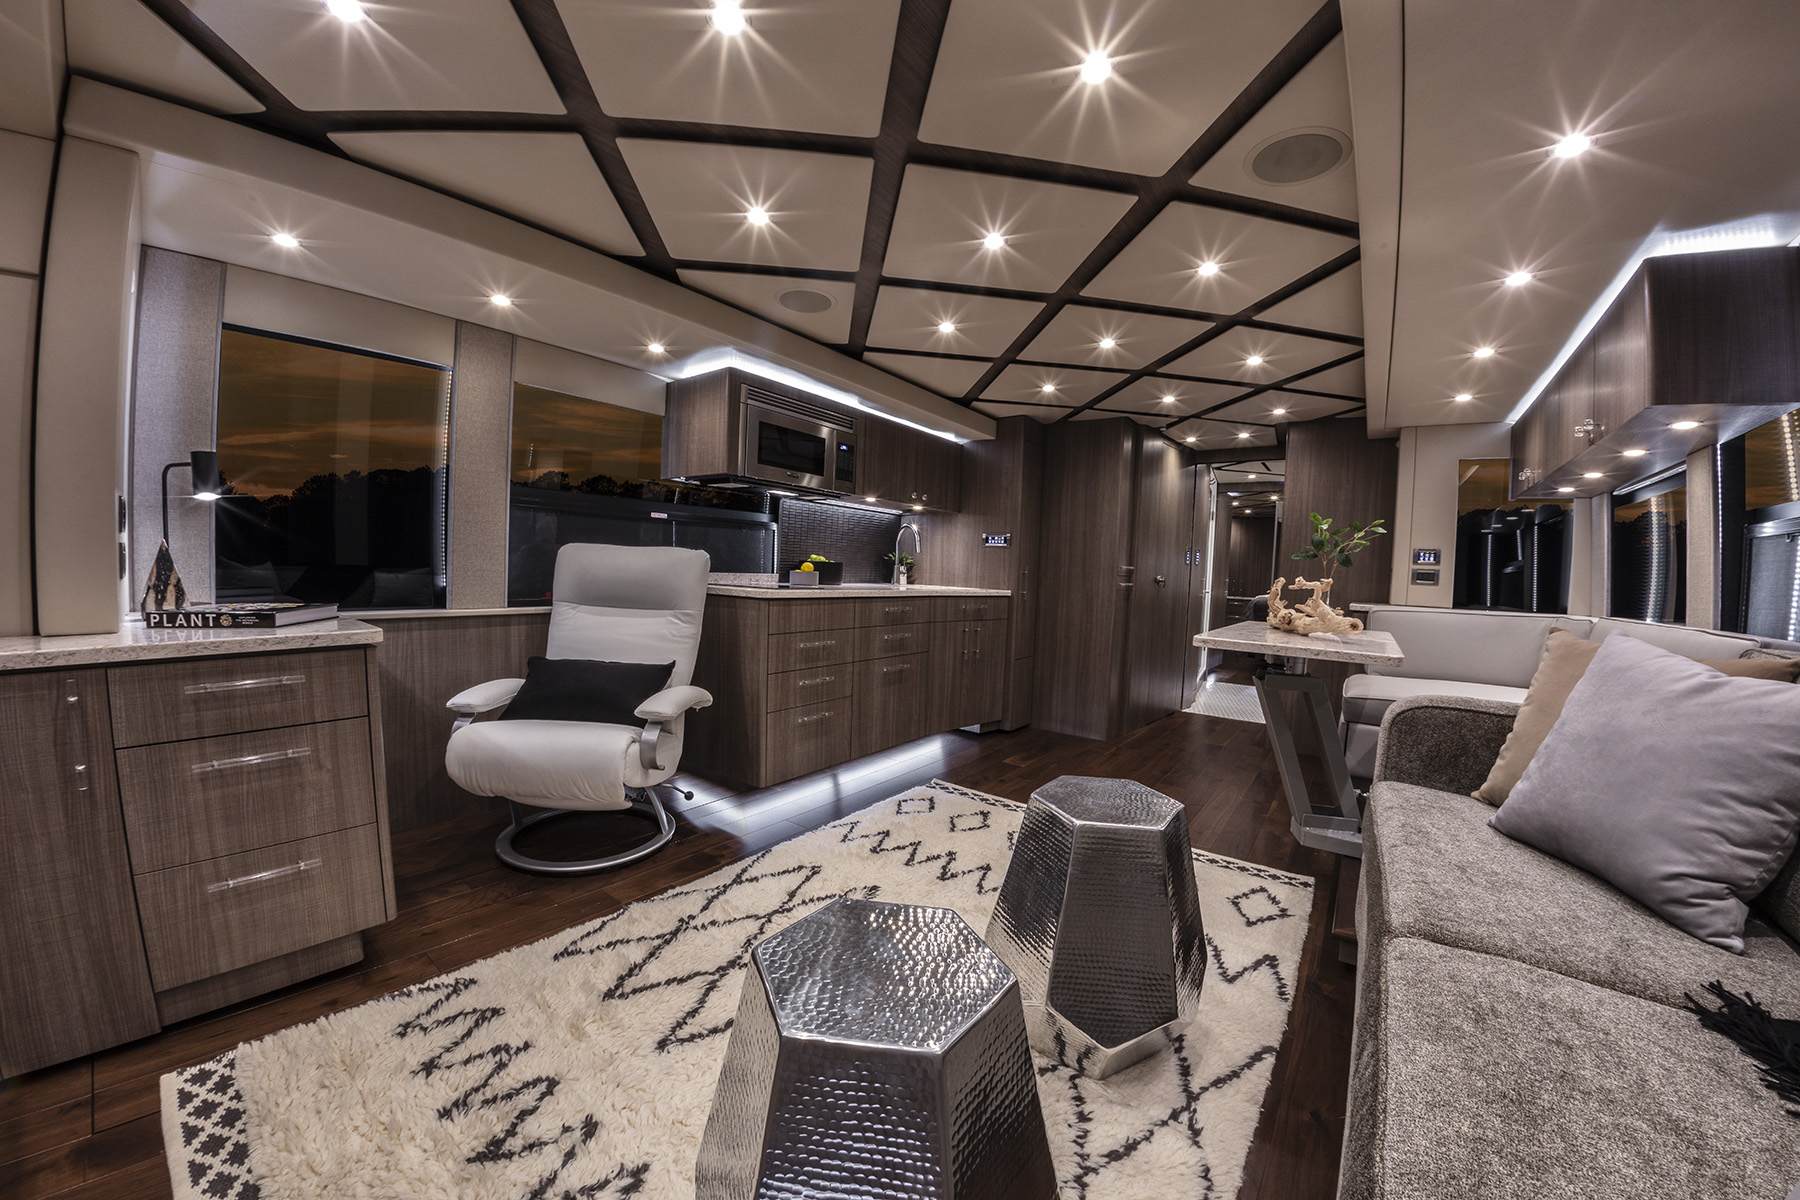 2019 Featherlite Coaches Quot Solstice Quot 3579 Featherlite